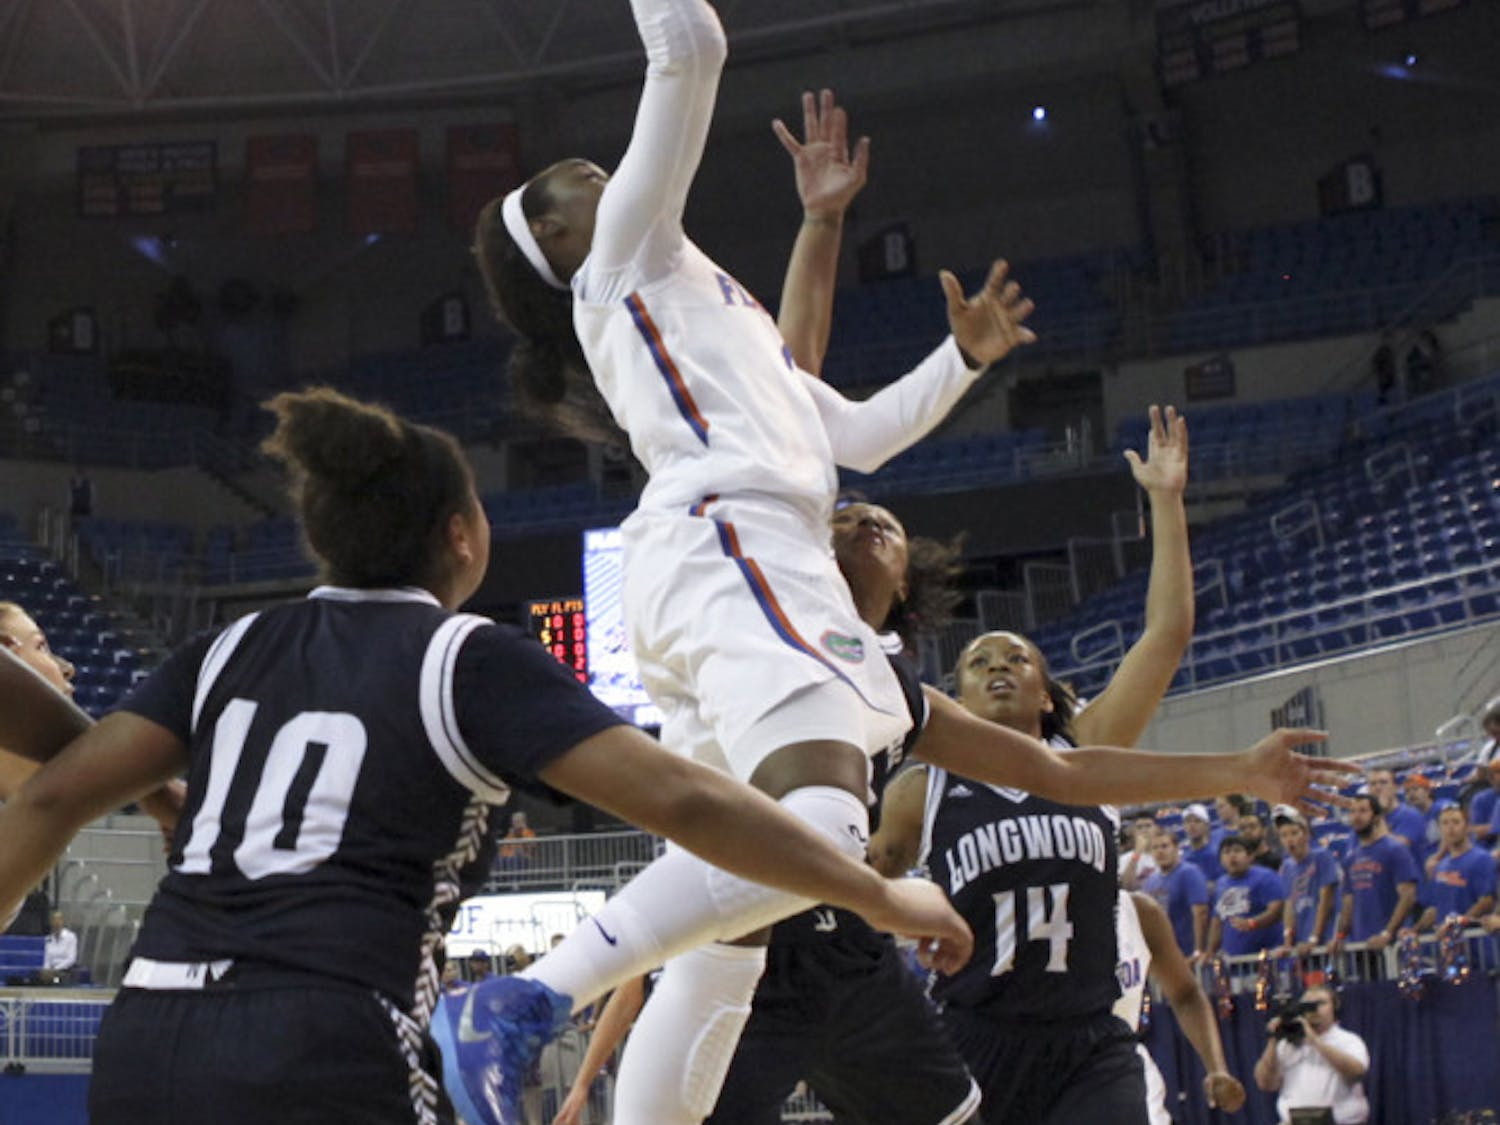 Ronni Williams goes up for a layup during Florida's win against Longwood on Nov. 17.